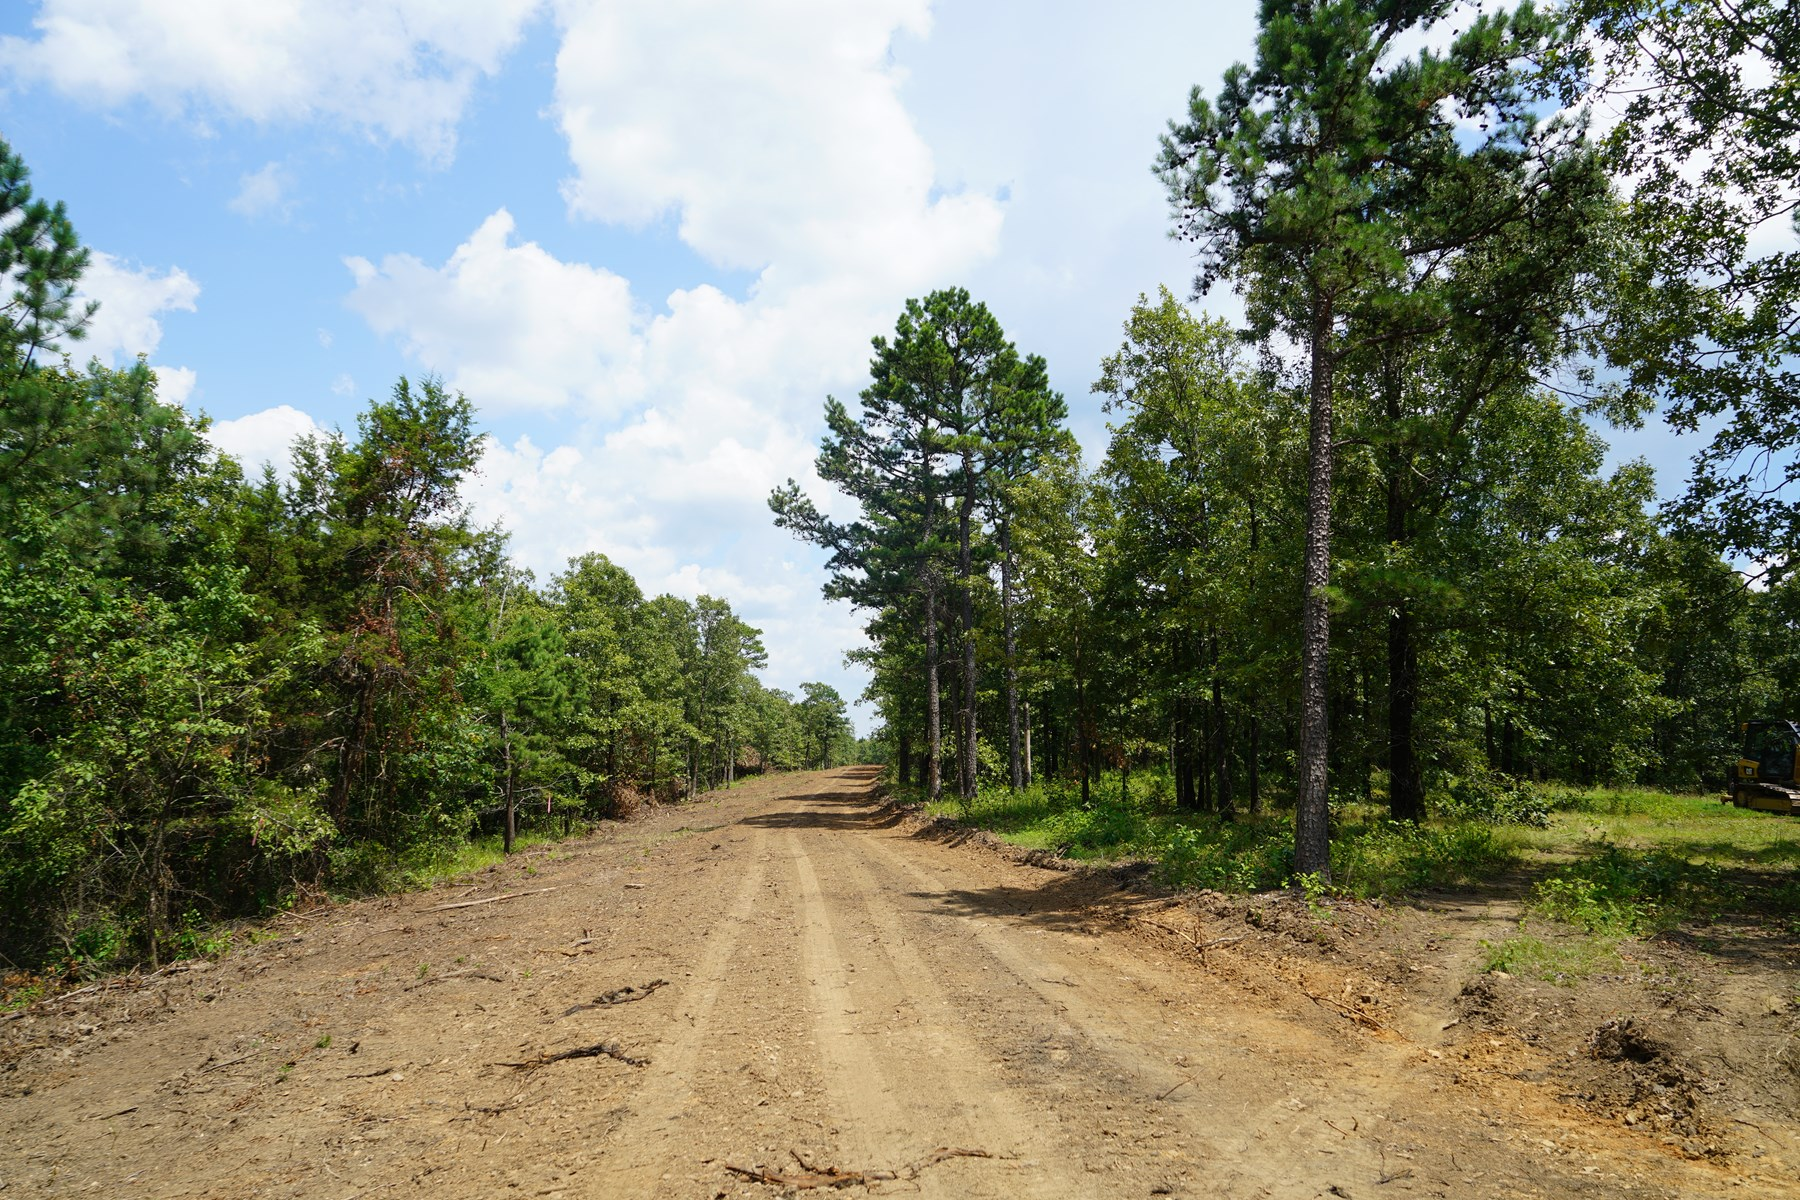 OUACHITA NATIONAL FOREST CABIN SITE IN SOUTHEAST OKLAHOMA